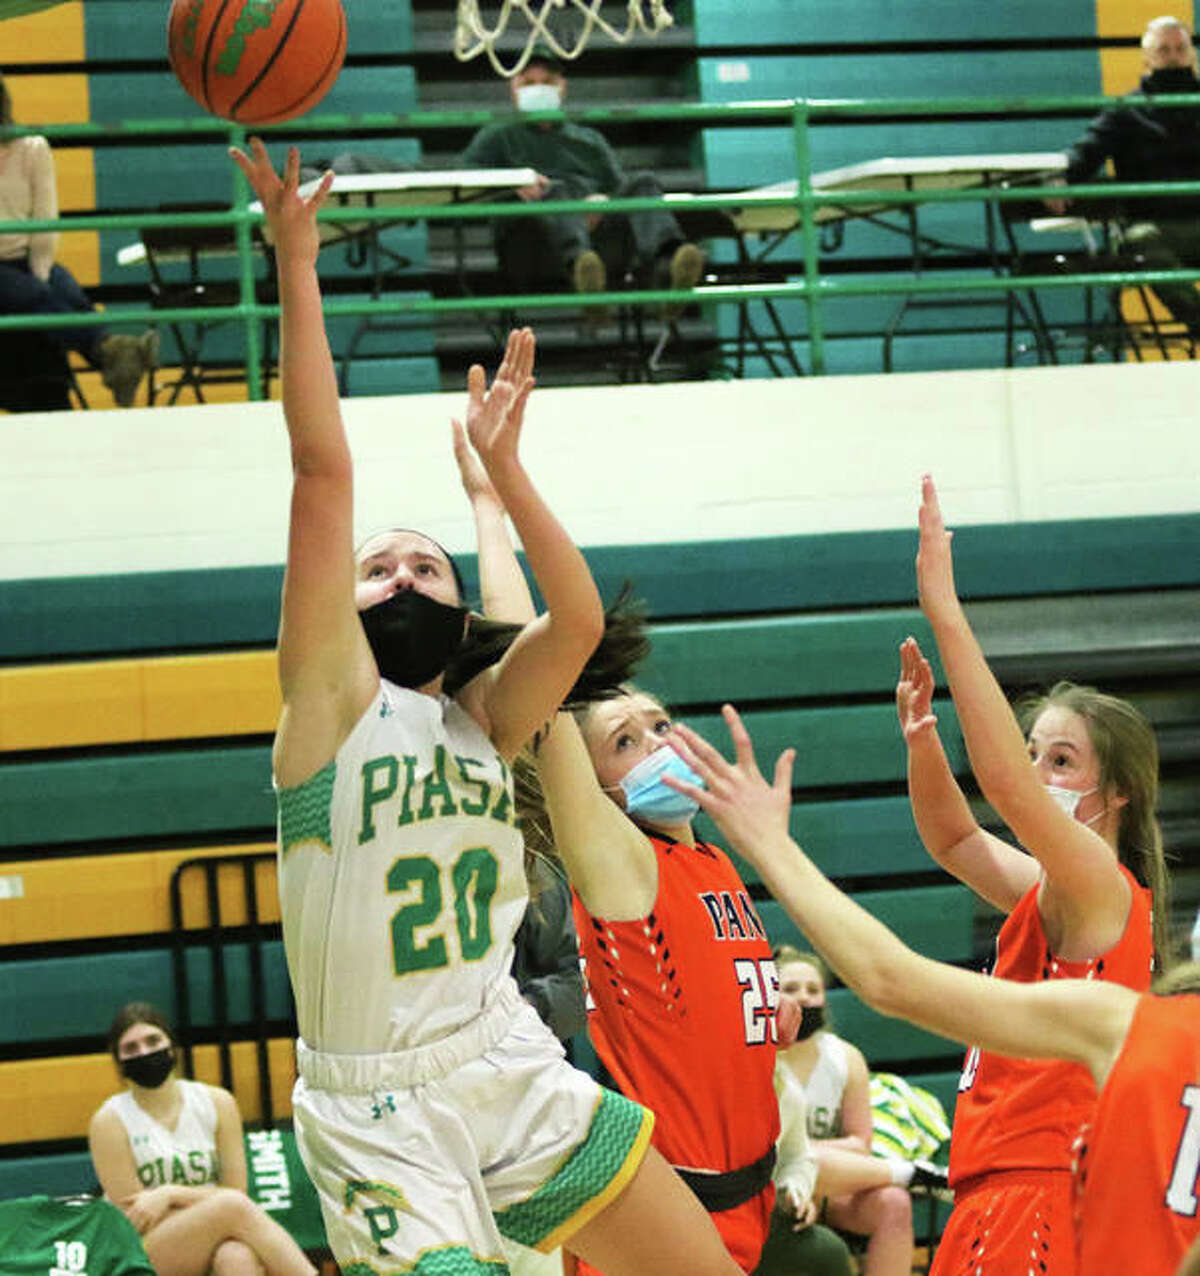 Southwestern's Korrie Hopkins (20), shown scoring against Pana in a Feb. 19 game in Piasa, scored 23 points on Friday night to lead the Piasa Birds to a SCC victory in Greenville.